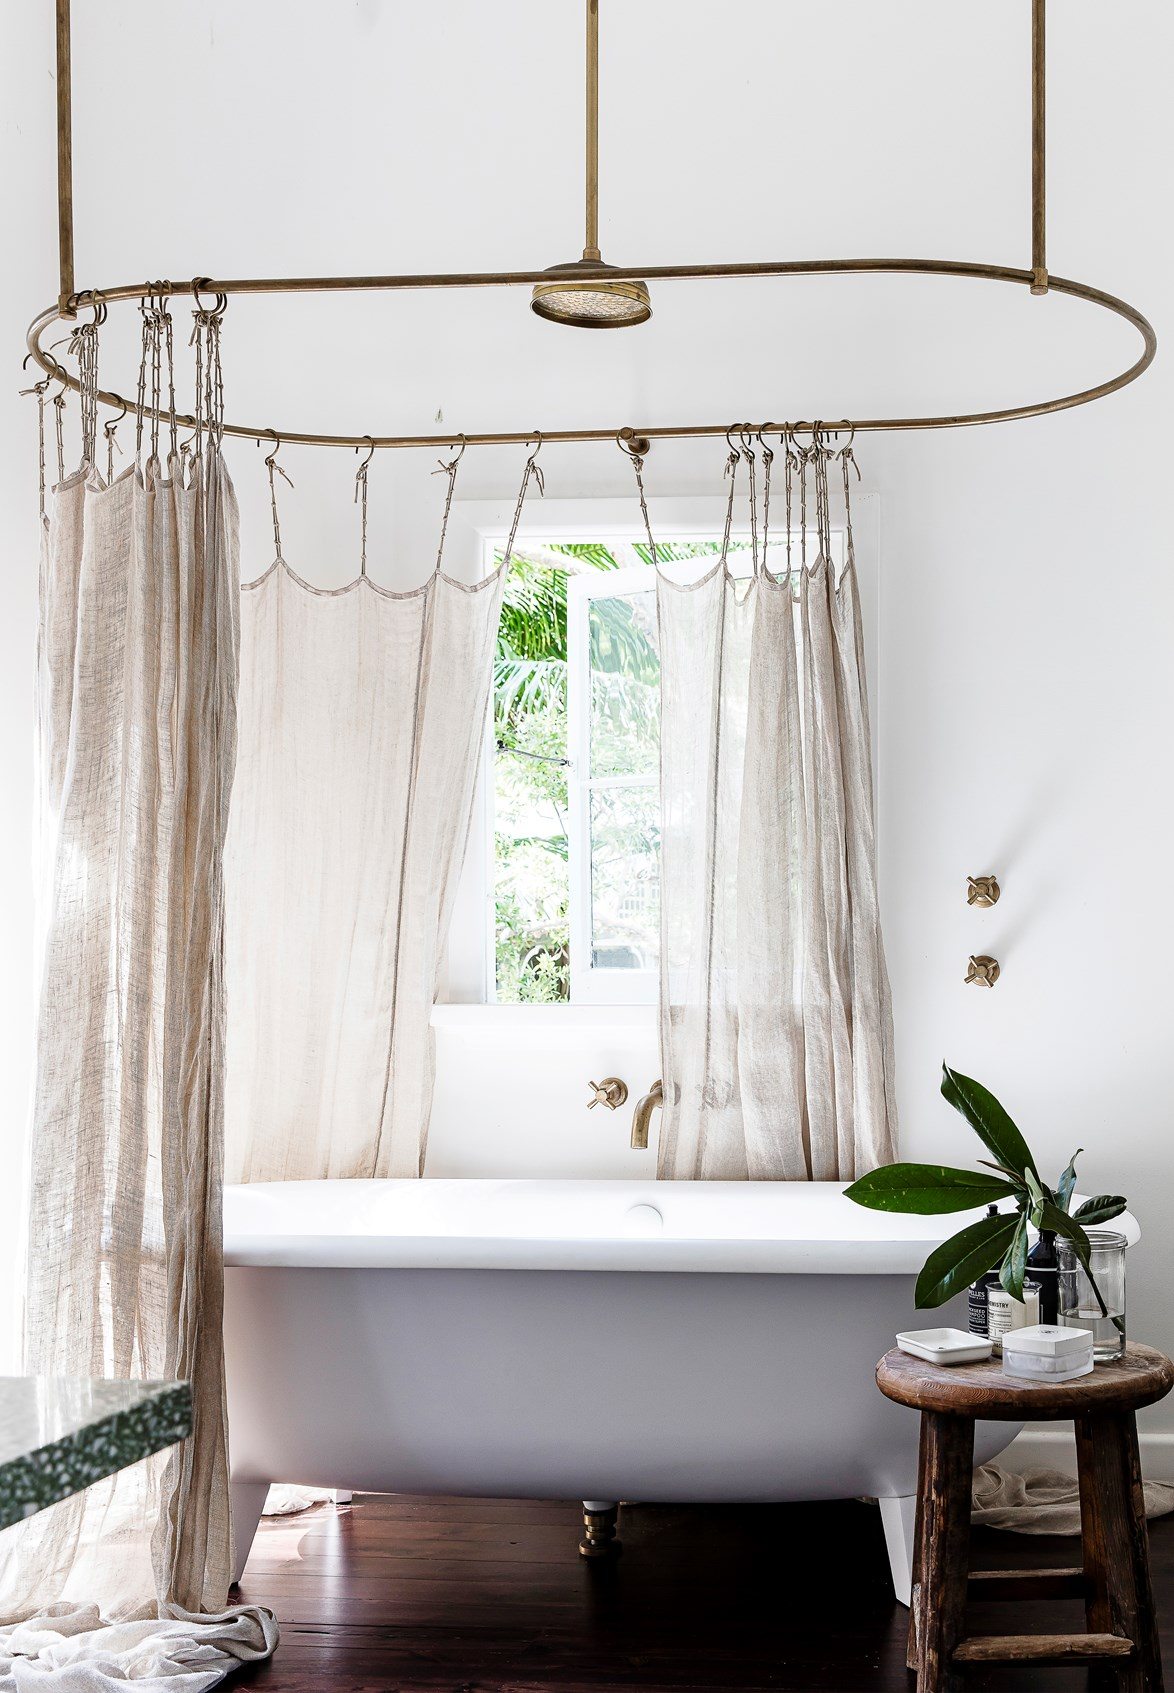 """This freestanding bath tub shows that shower curtains can be more dreamy than daggy when styled correctly. Take cues from this [renovated beach shack in Pittwater](https://www.homestolove.com.au/pittwater-beach-shack-gets-a-heartfelt-renovation-3064